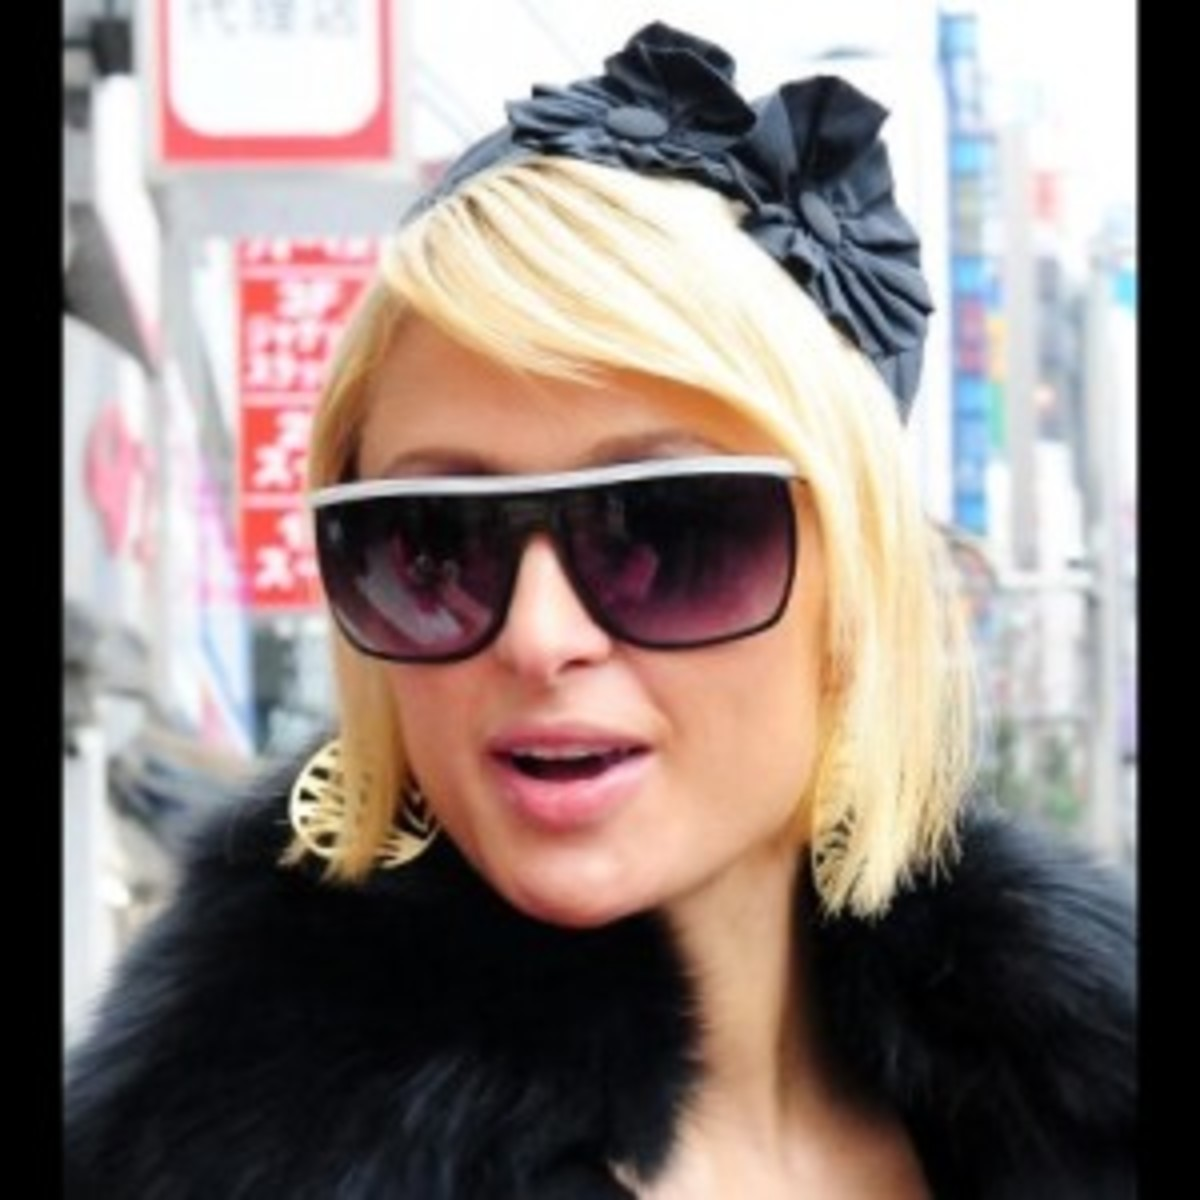 Paris Hilton sports a retro Pillbox proving the Pillbox is forever.